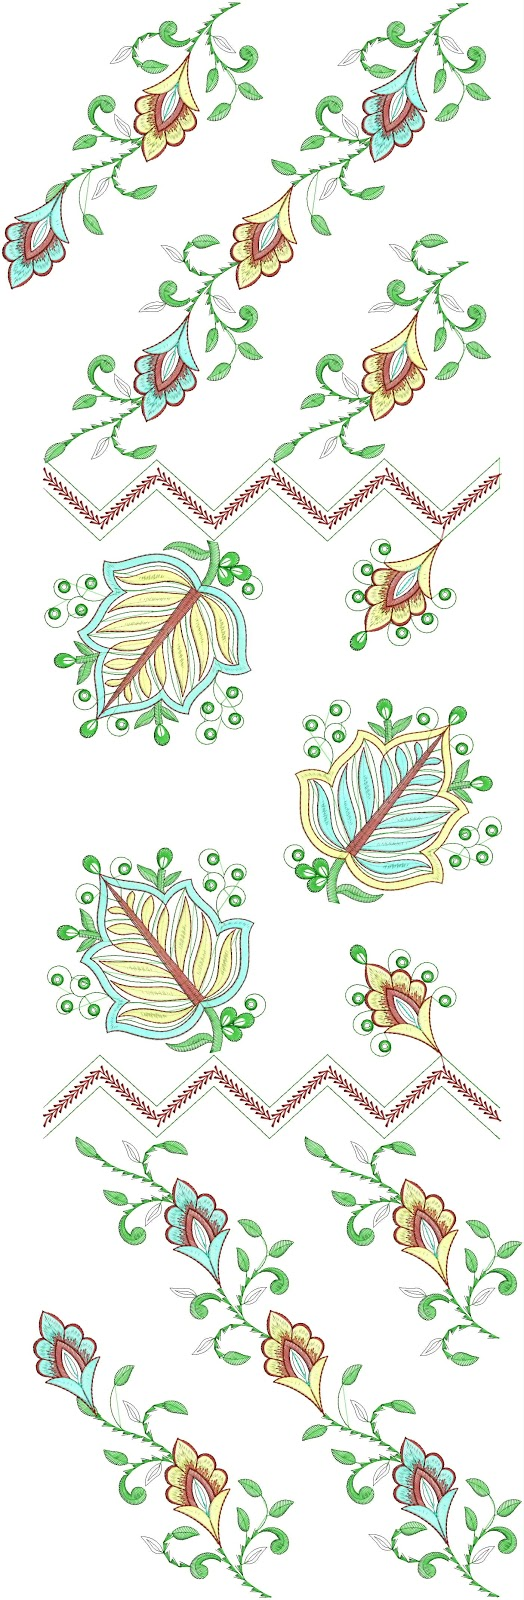 Embdesigntube all over clothing embroidery designs